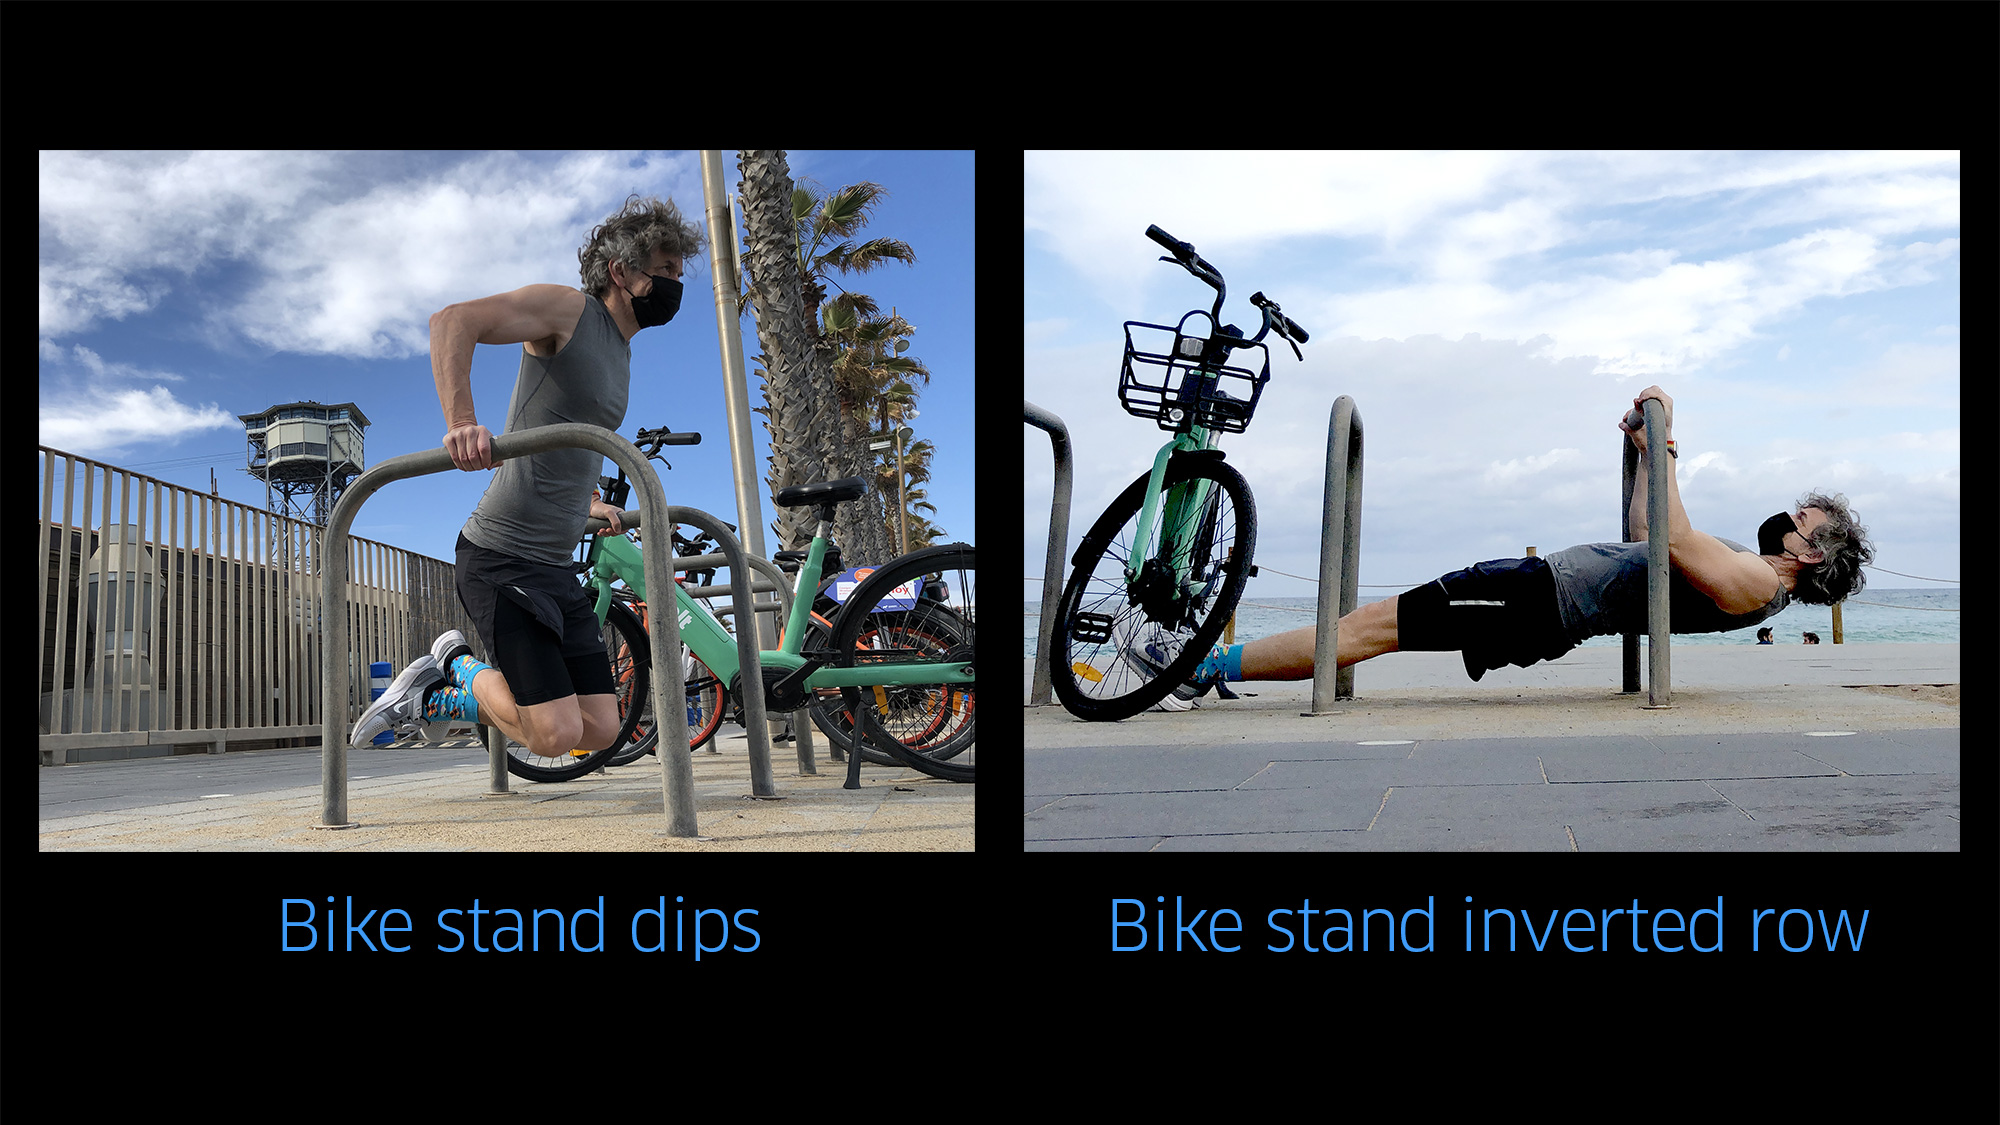 How to use a bike stand for dips and inverted rows